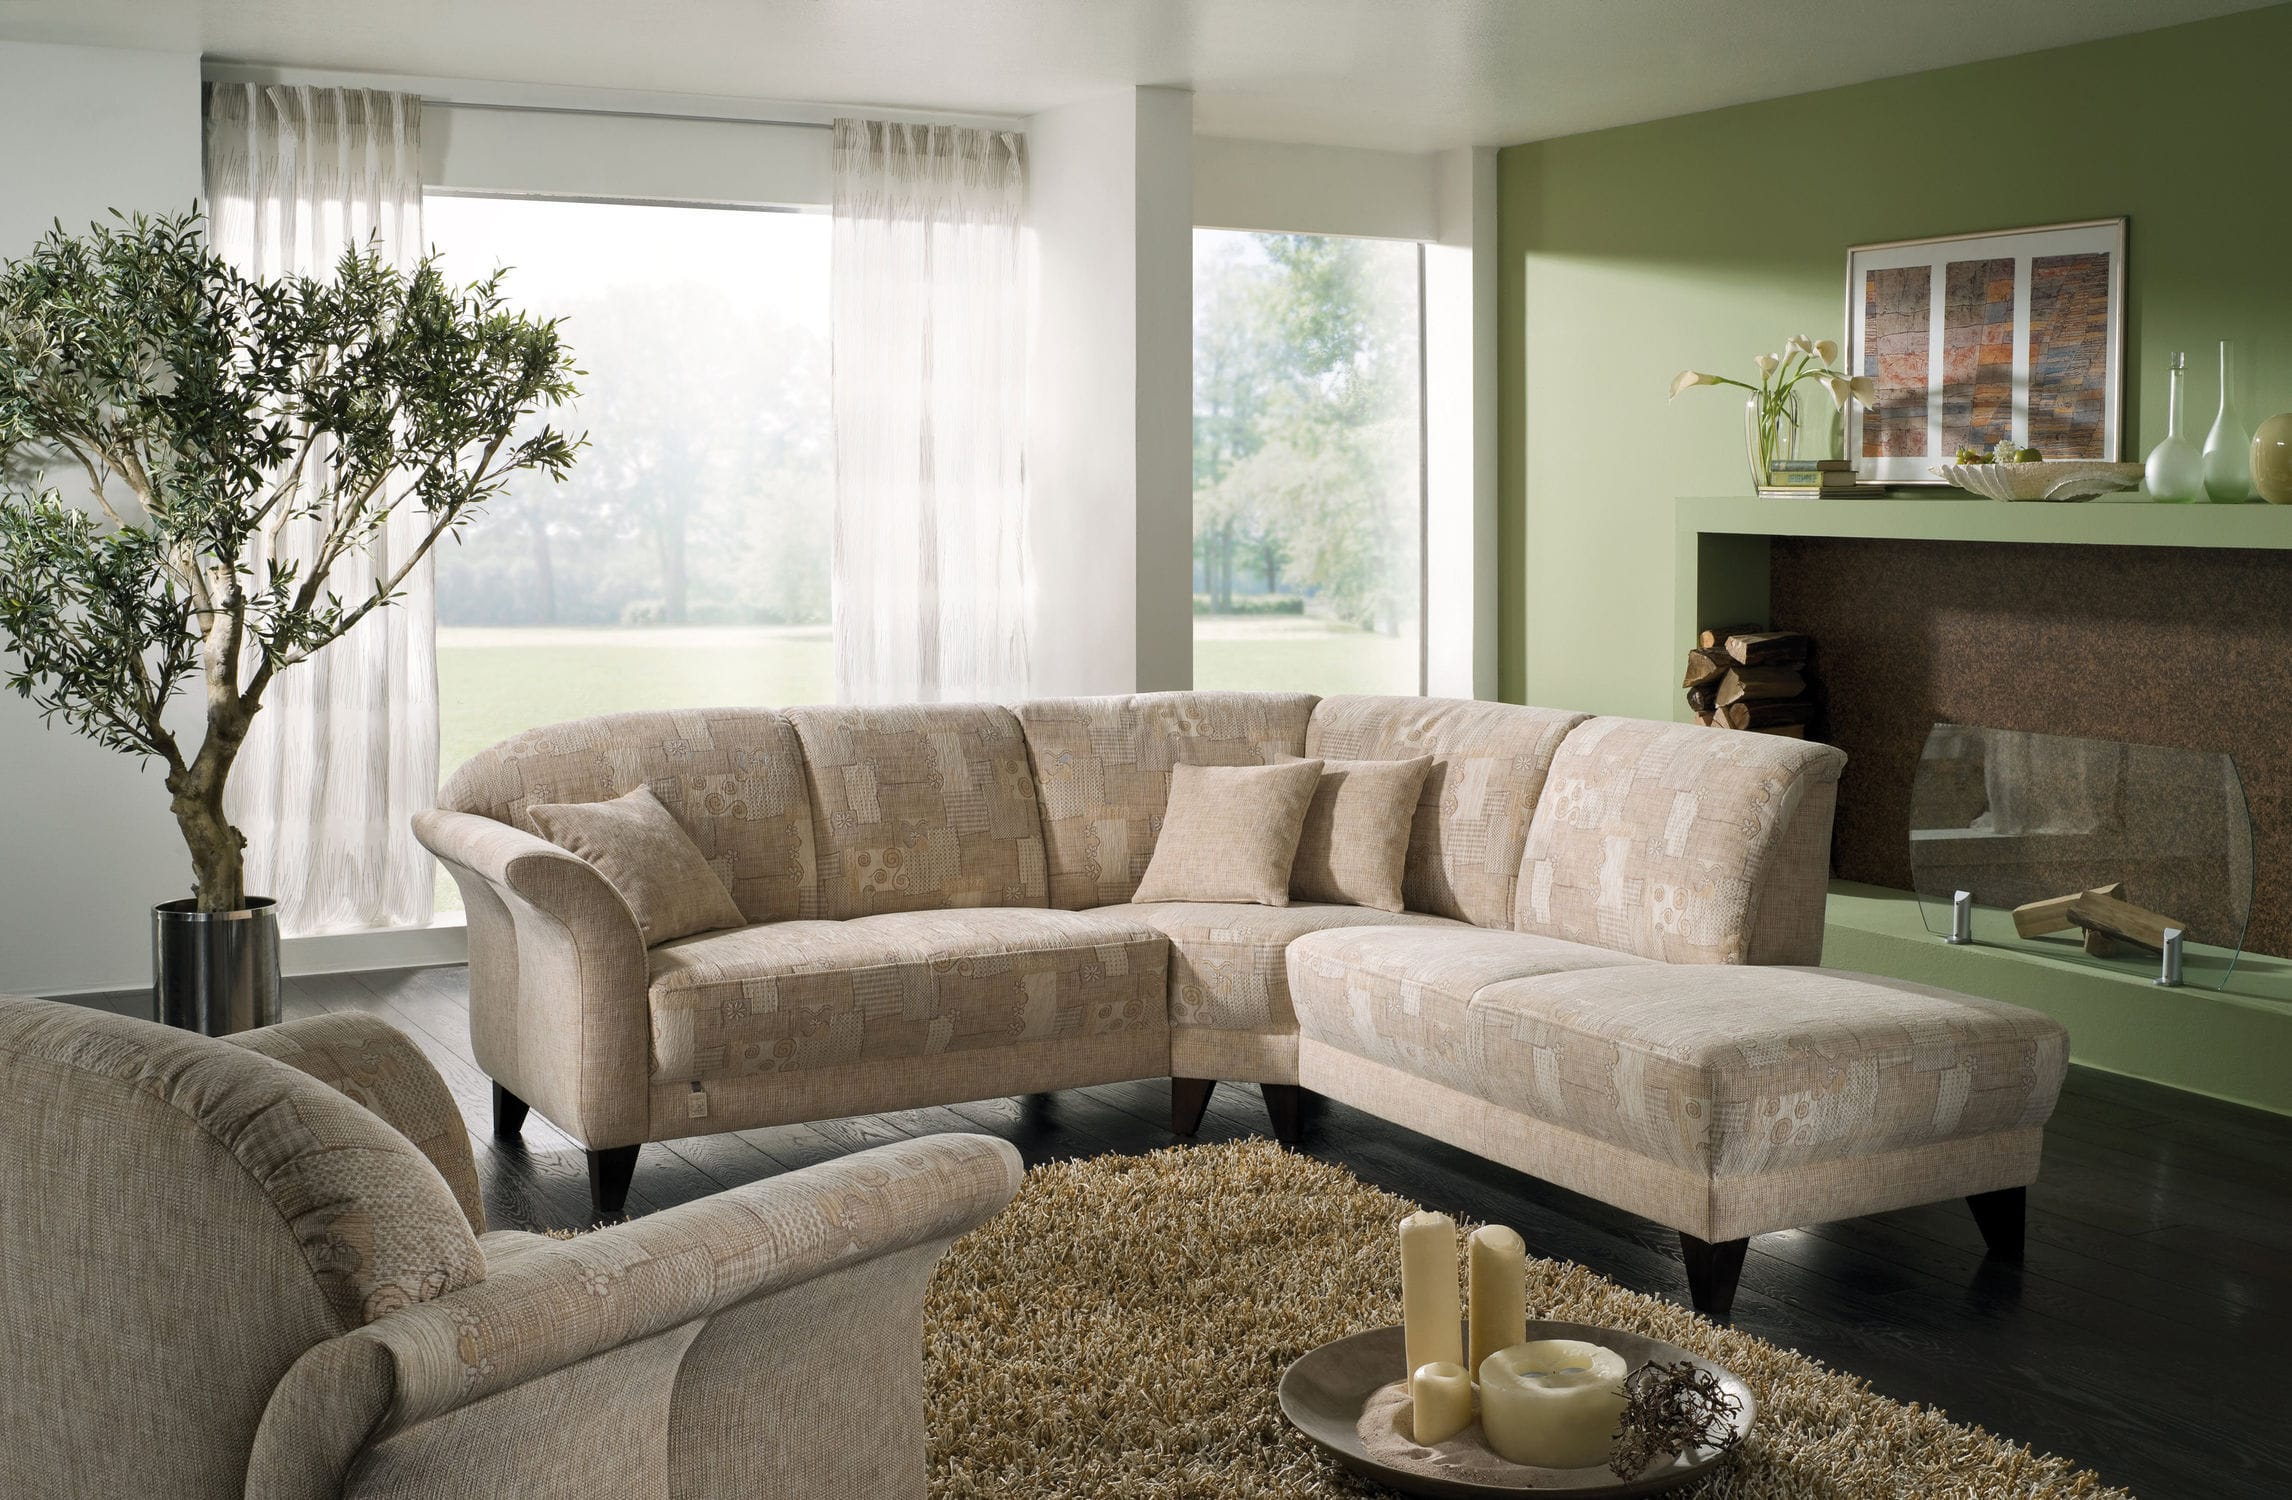 Modular sofa traditional fabric 2 seater CHALET CELANO S